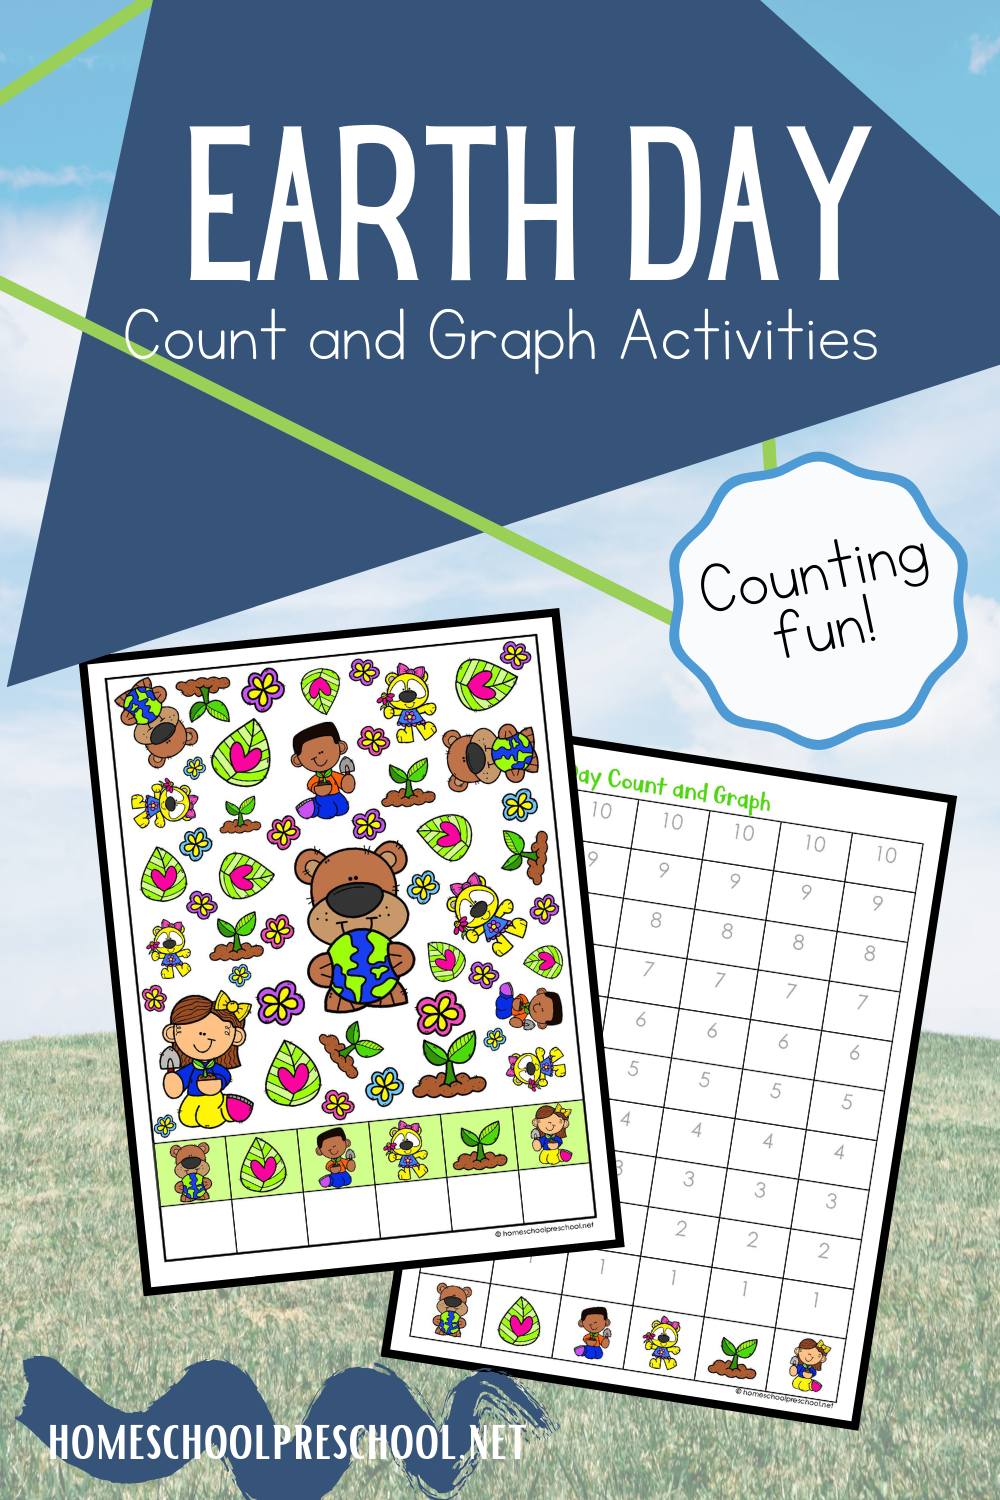 Earth Day Count And Graph In 2021 Earth Day Activities Earth Day Graphing [ 1500 x 1000 Pixel ]